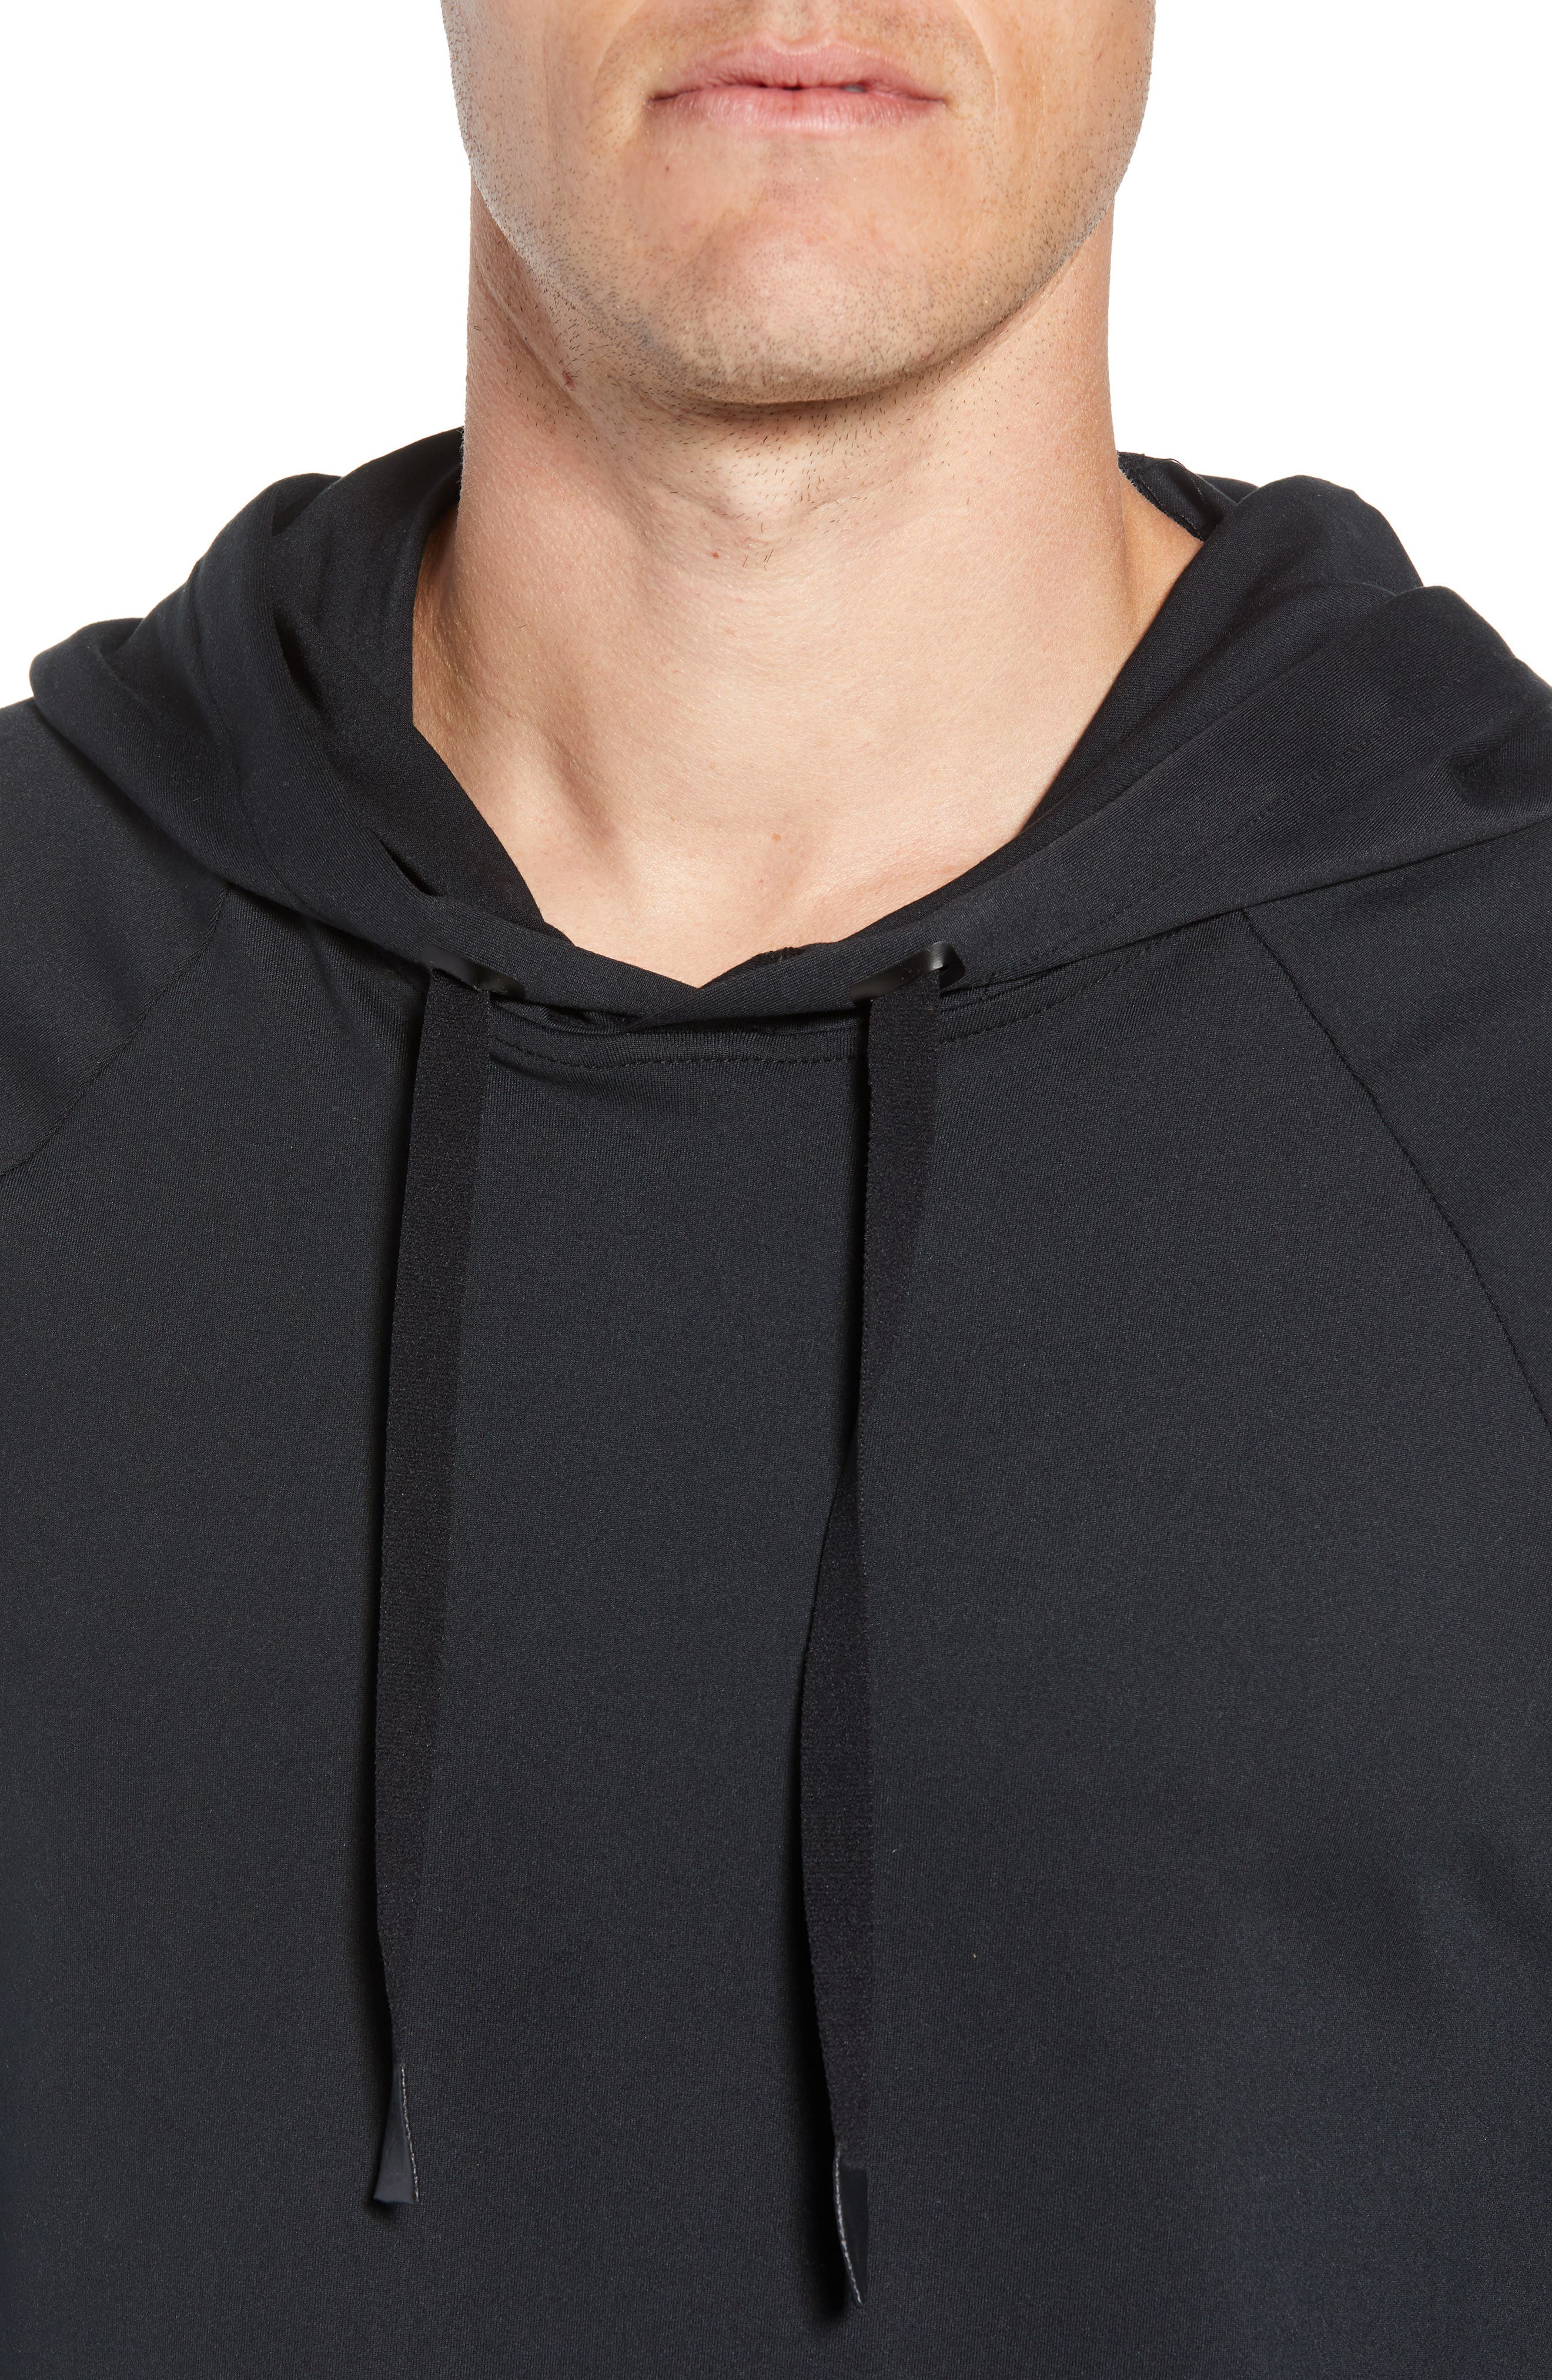 Conquer Hoodie,                             Alternate thumbnail 4, color,                             BLACK SOLID